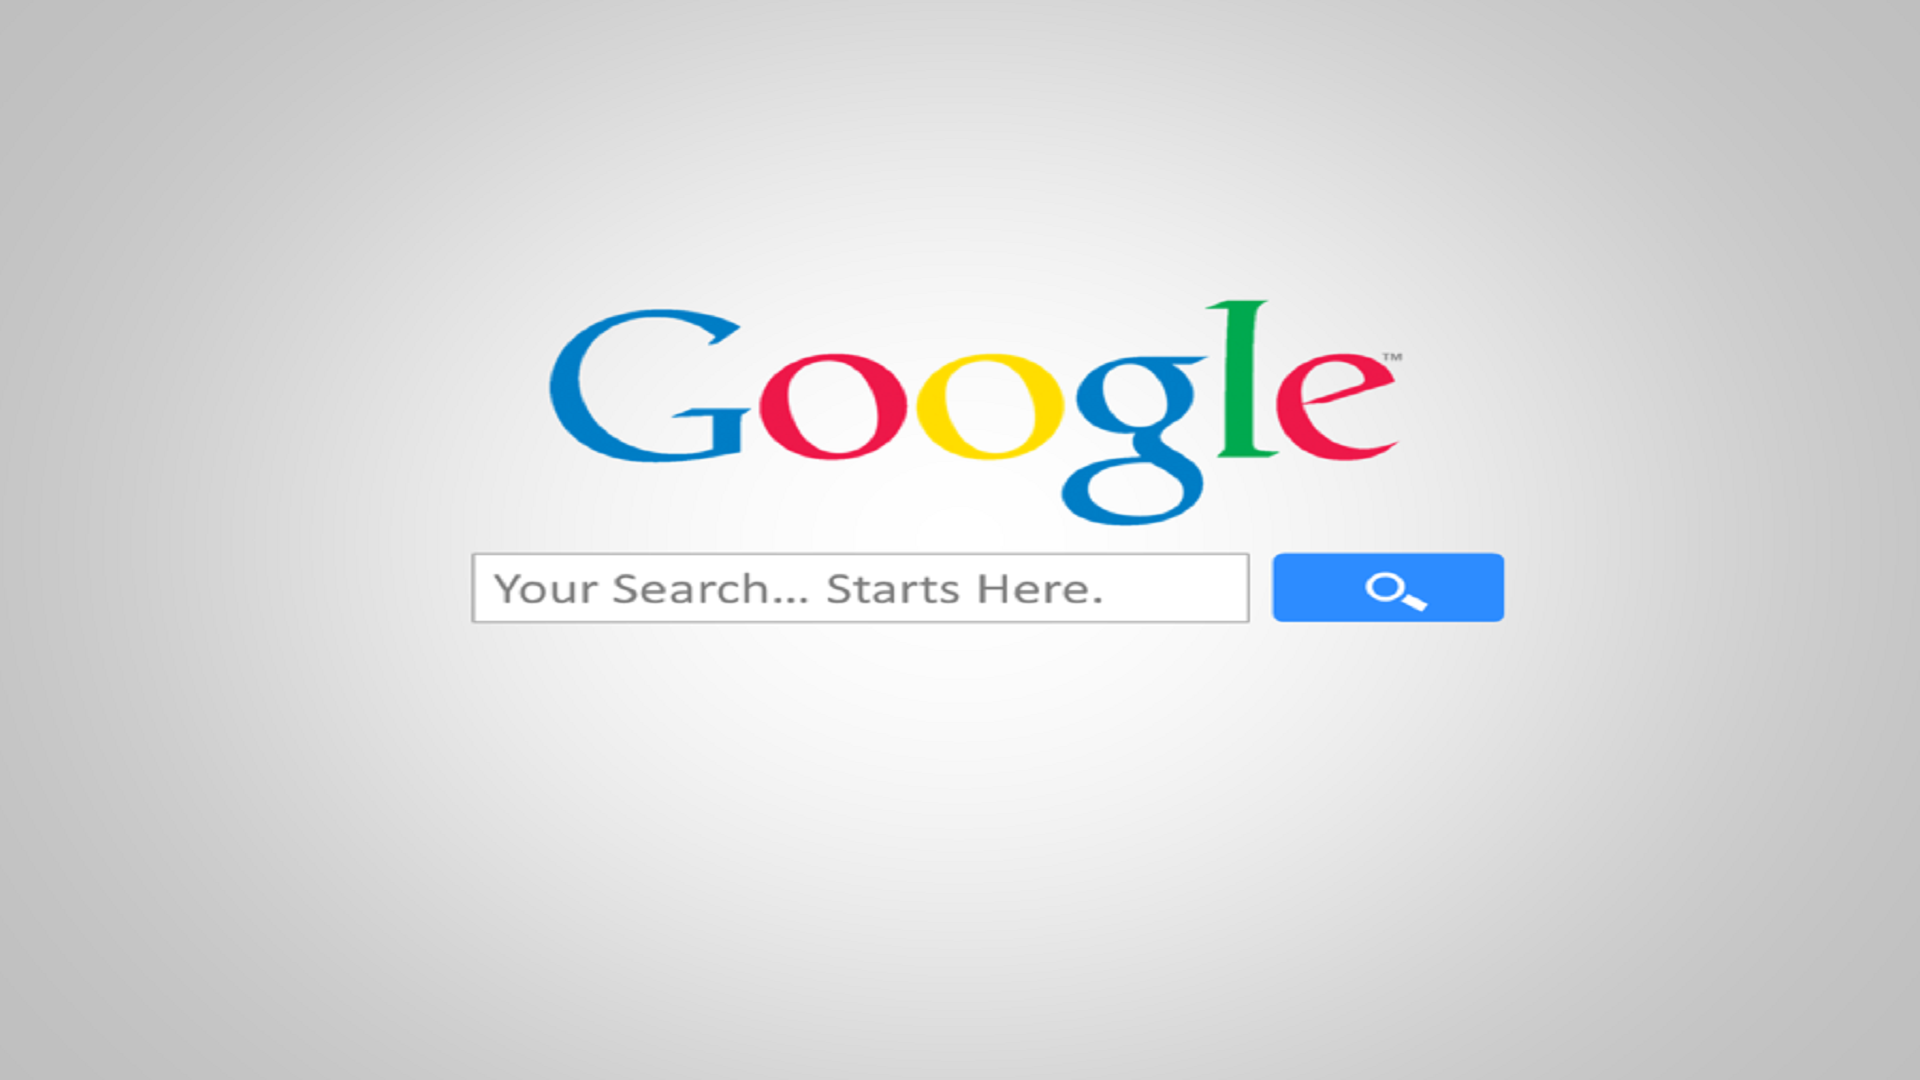 google-best-search-engine-free-hd-wallpapers